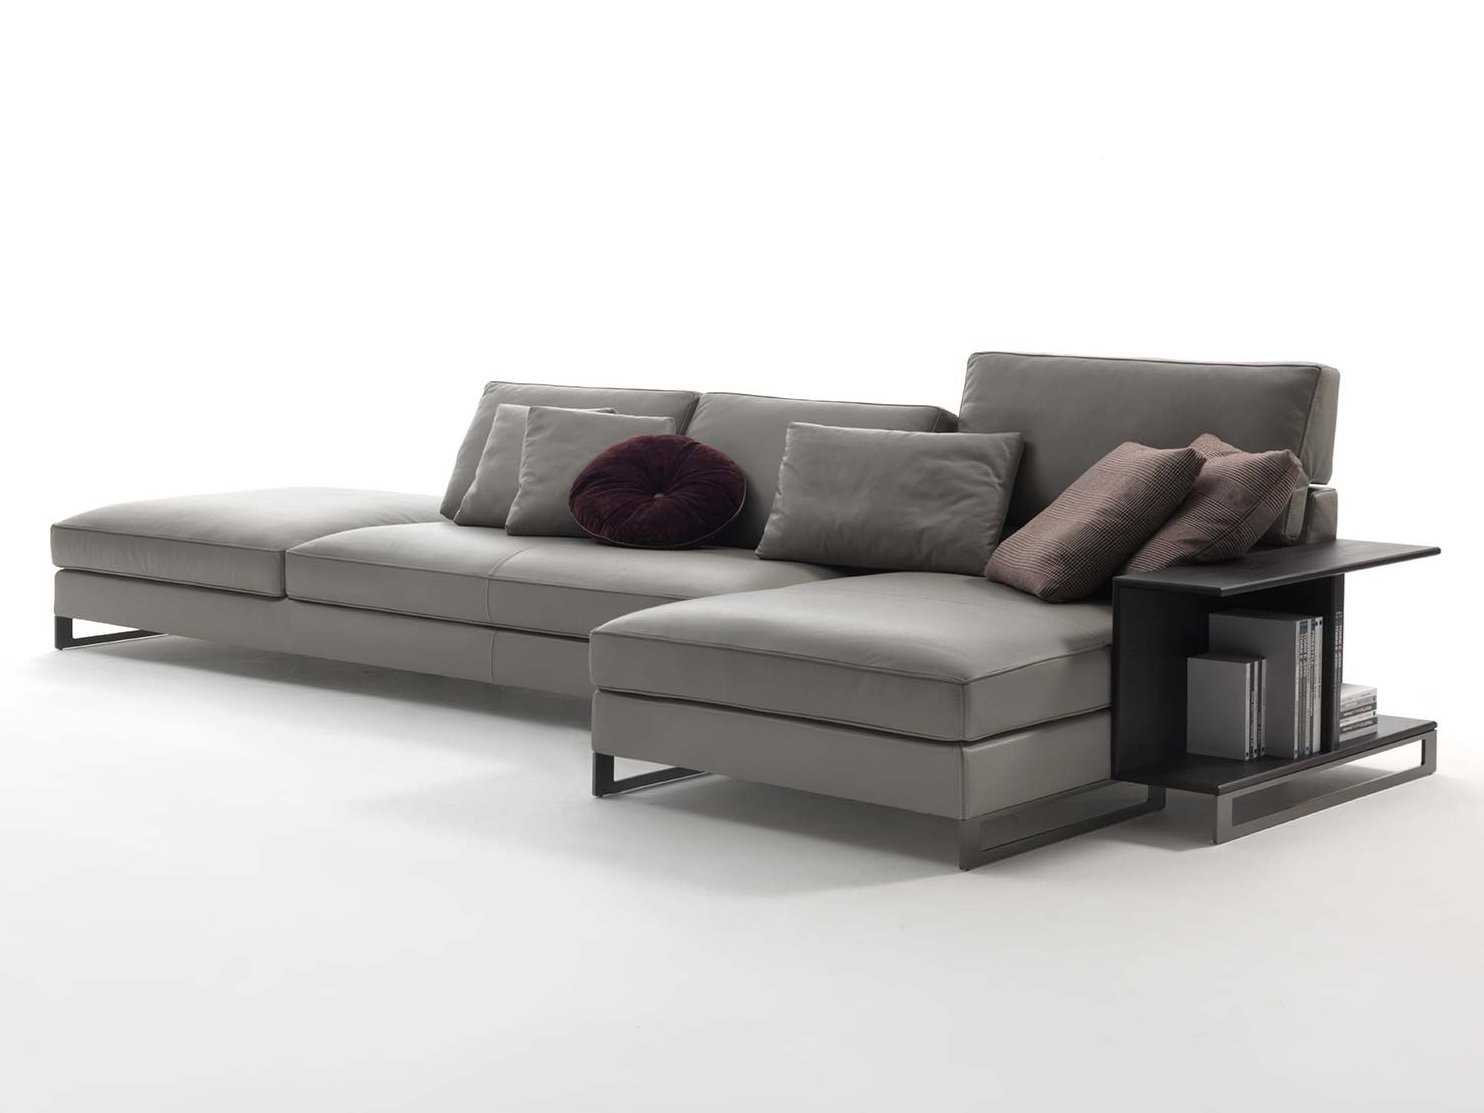 Davis book leather sofa by frigerio poltrone e divani for Poltrone e sofa contatti